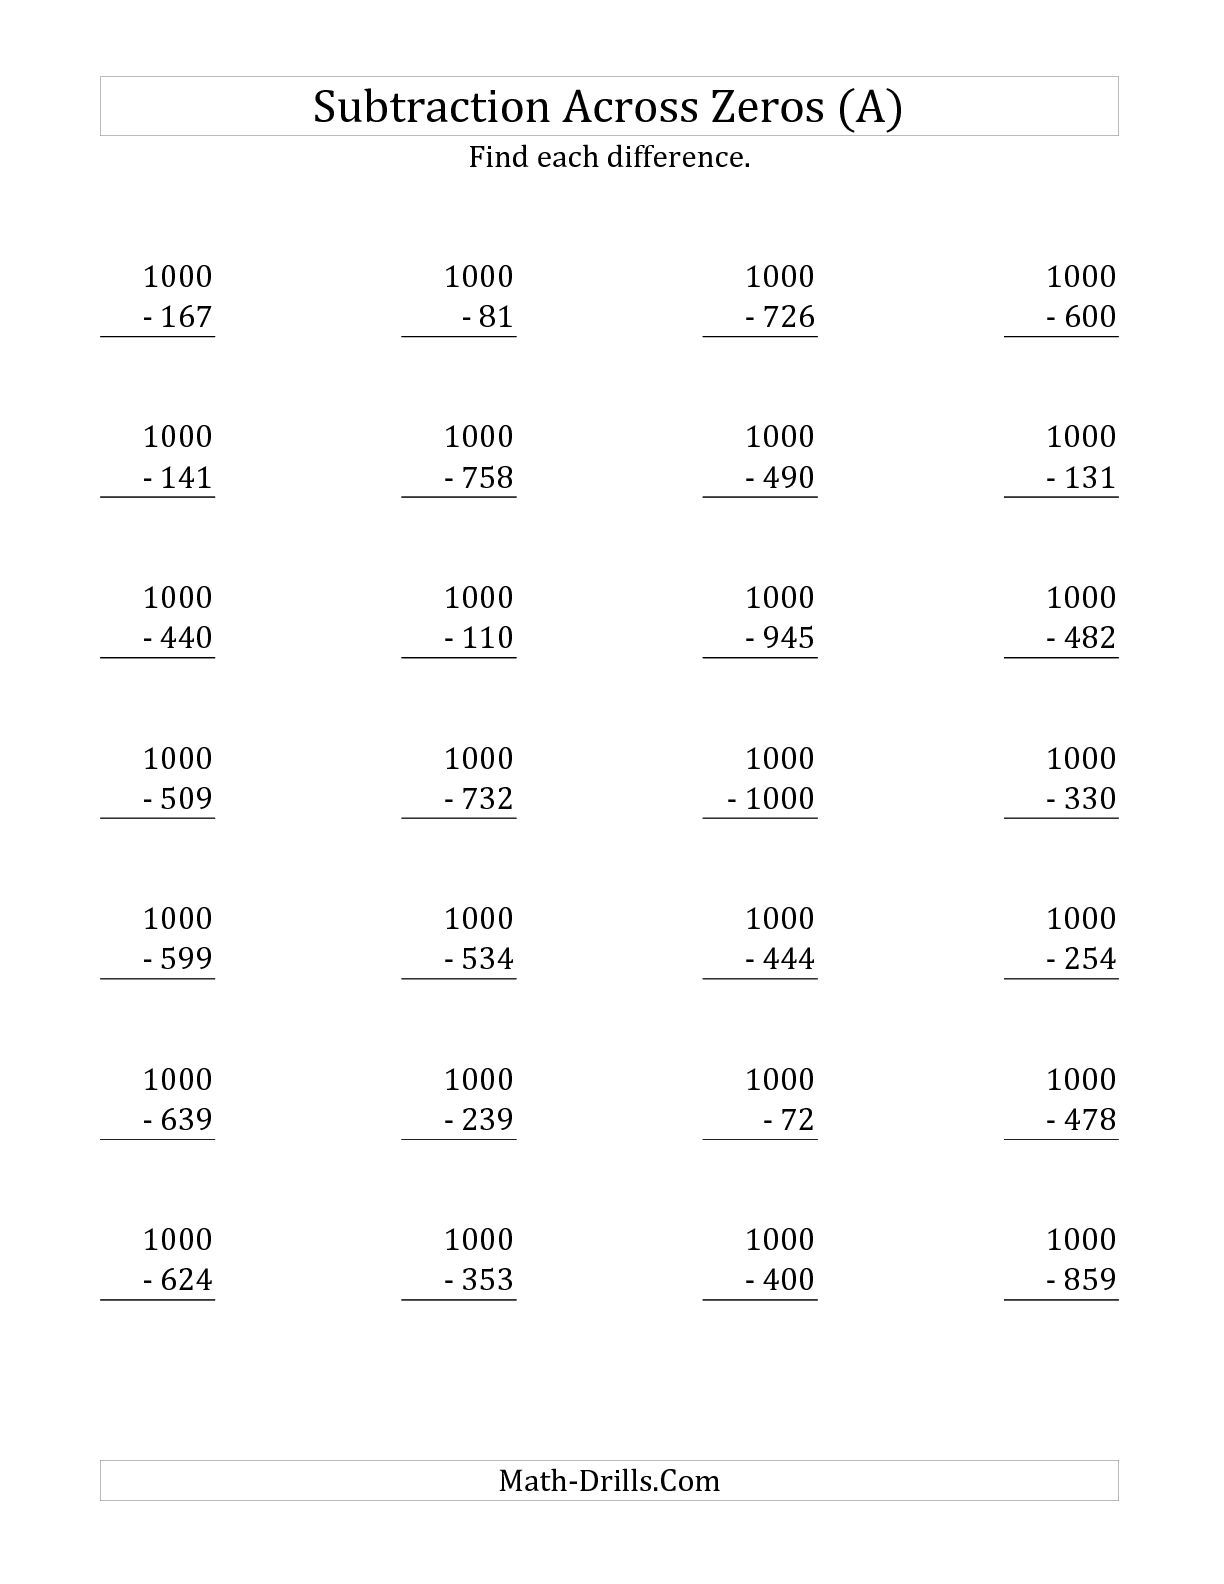 The Subtracting Across Zeros From 1000 A Math Worksheet From The Subtraction Worksheet Page A Subtraction Across Zeros Subtraction Worksheets Math Worksheets